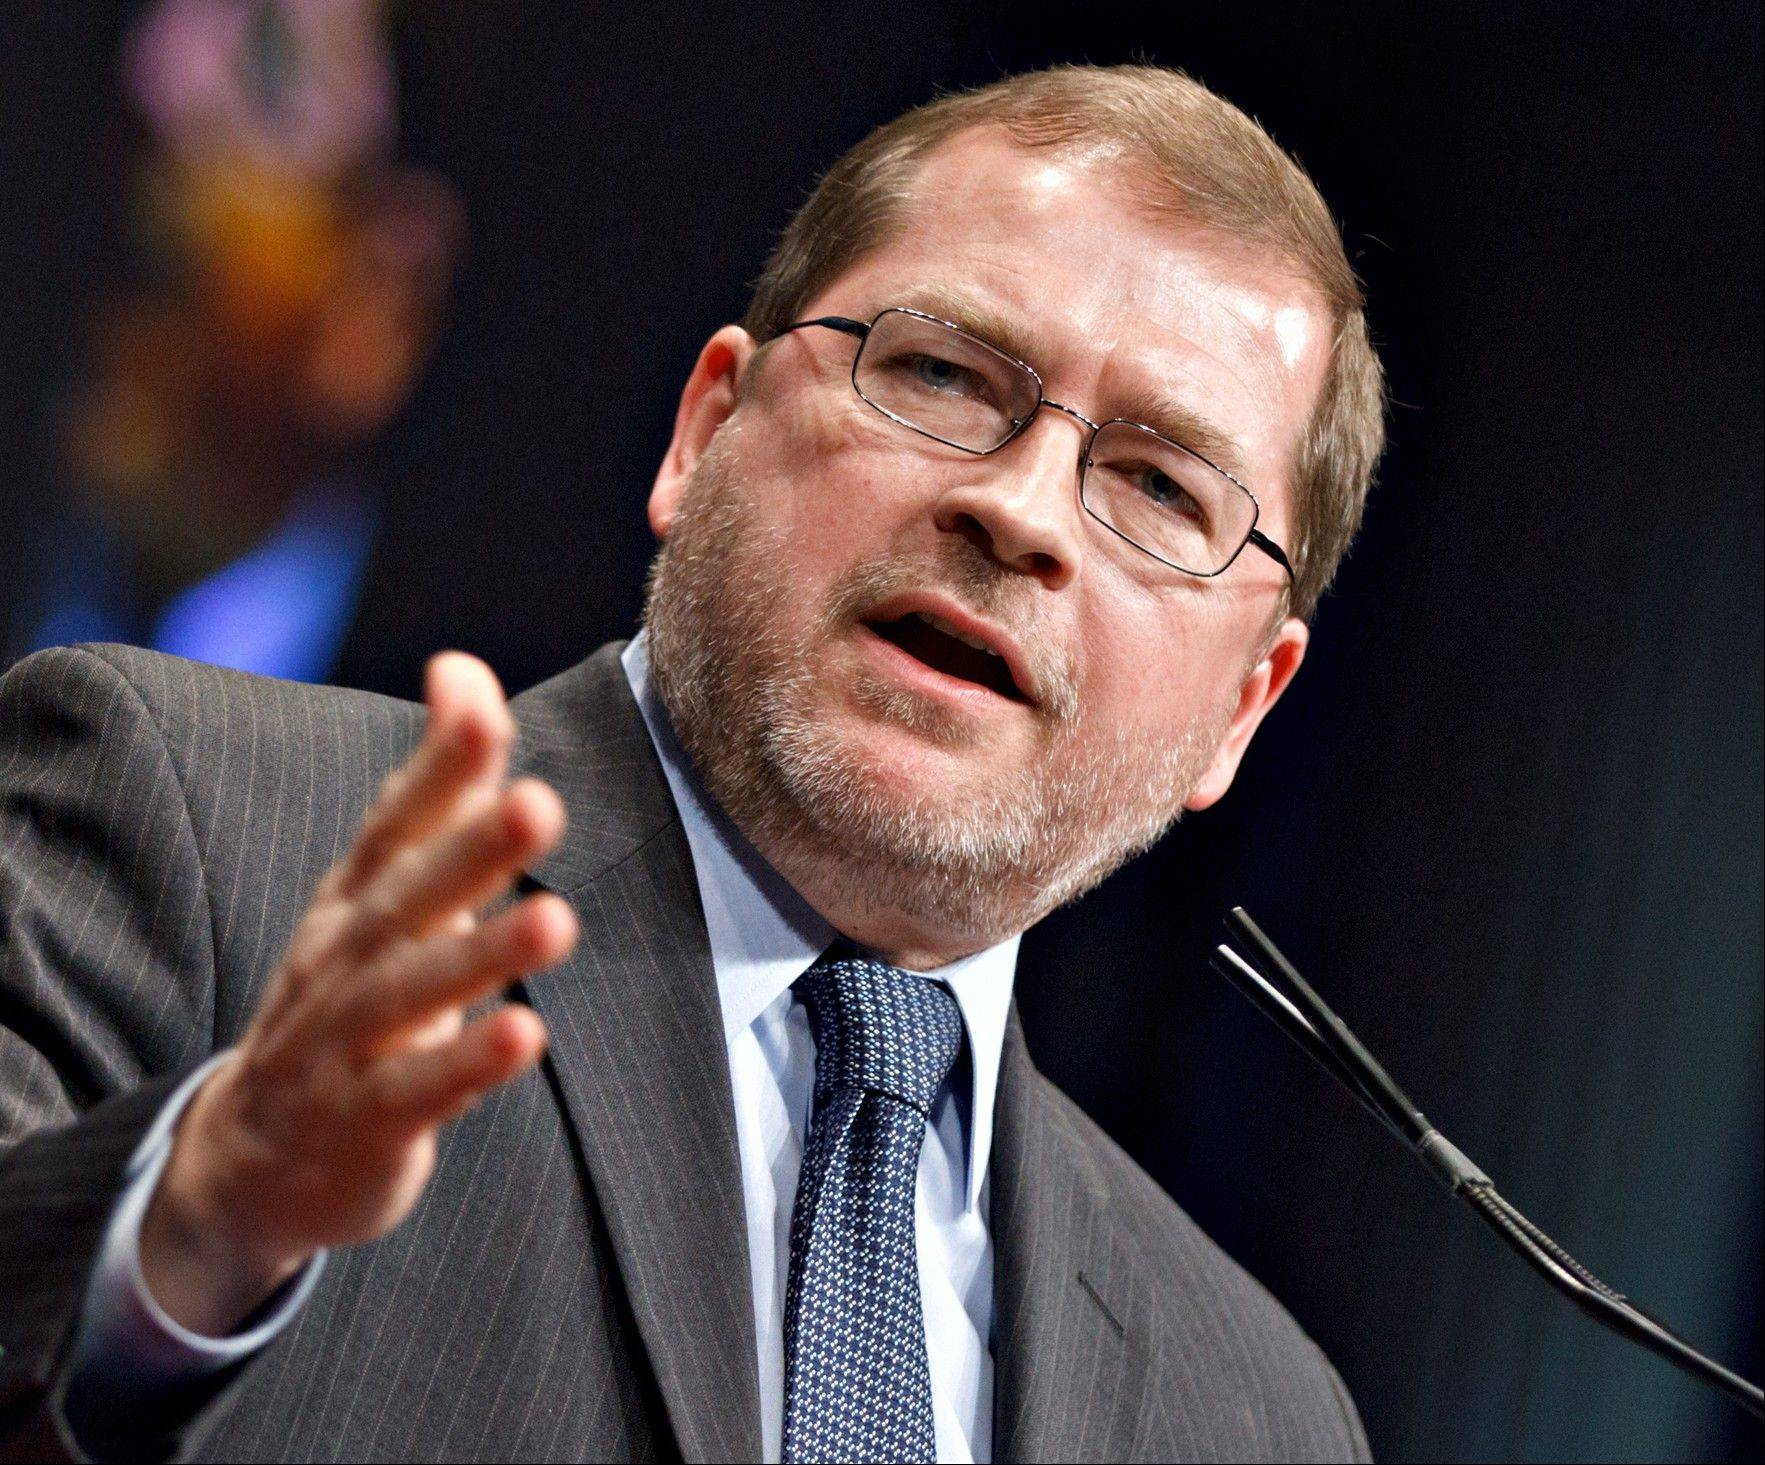 Anti-tax activist Grover Norquist, president of Americans for Tax Reform